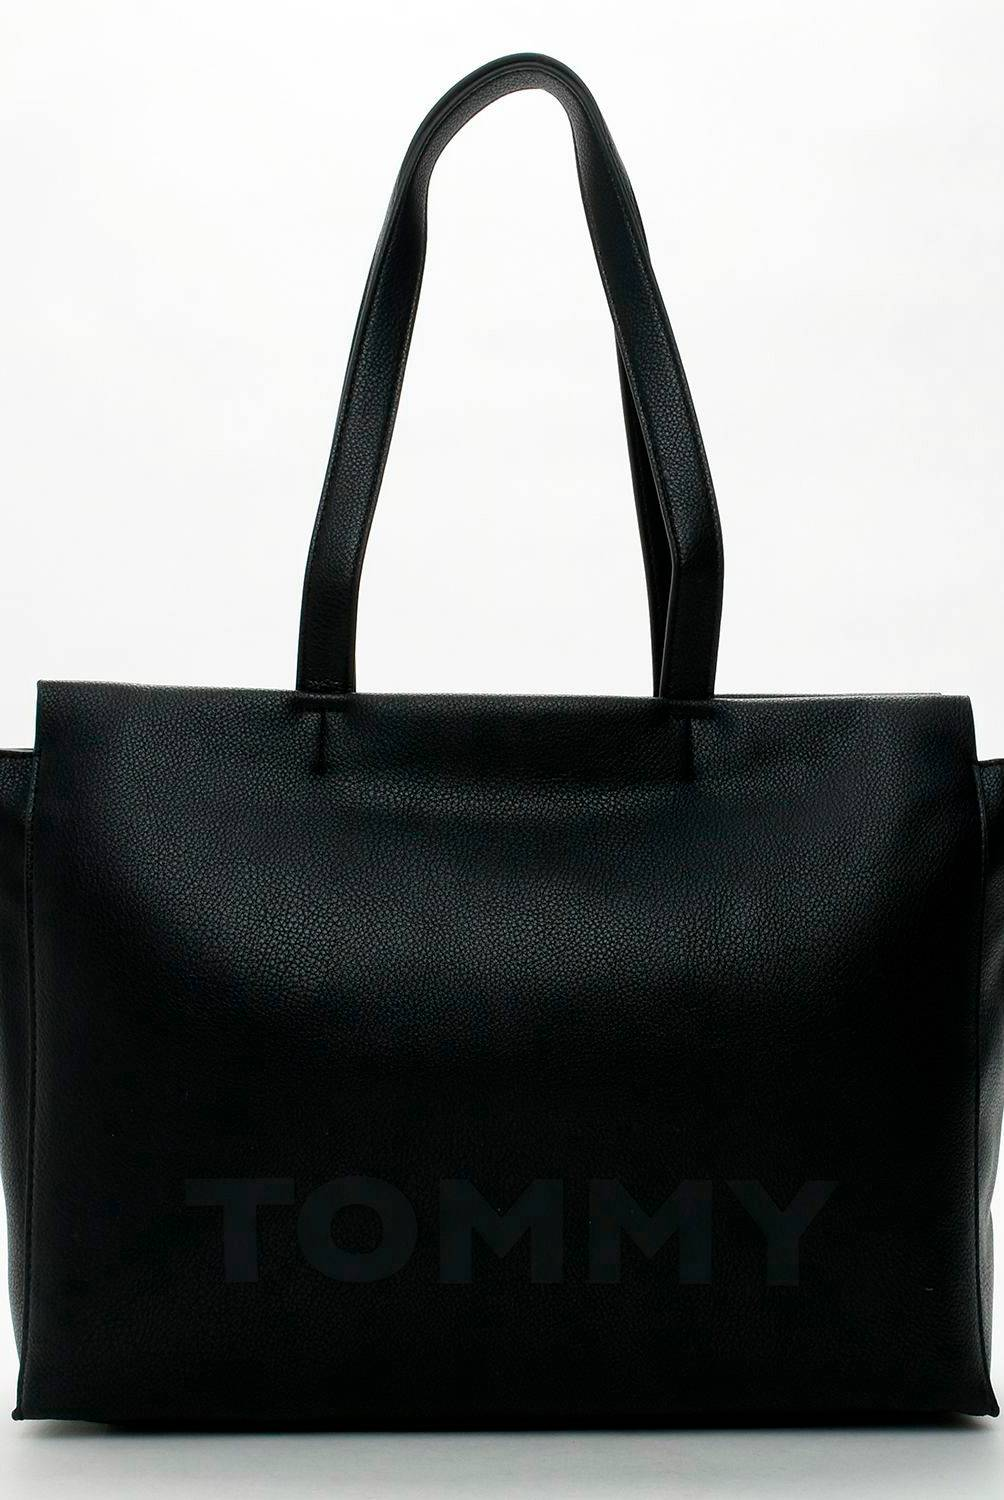 Tommy Hilfiger - Bolso Tommy Hilfiger de hombro TH Youthful